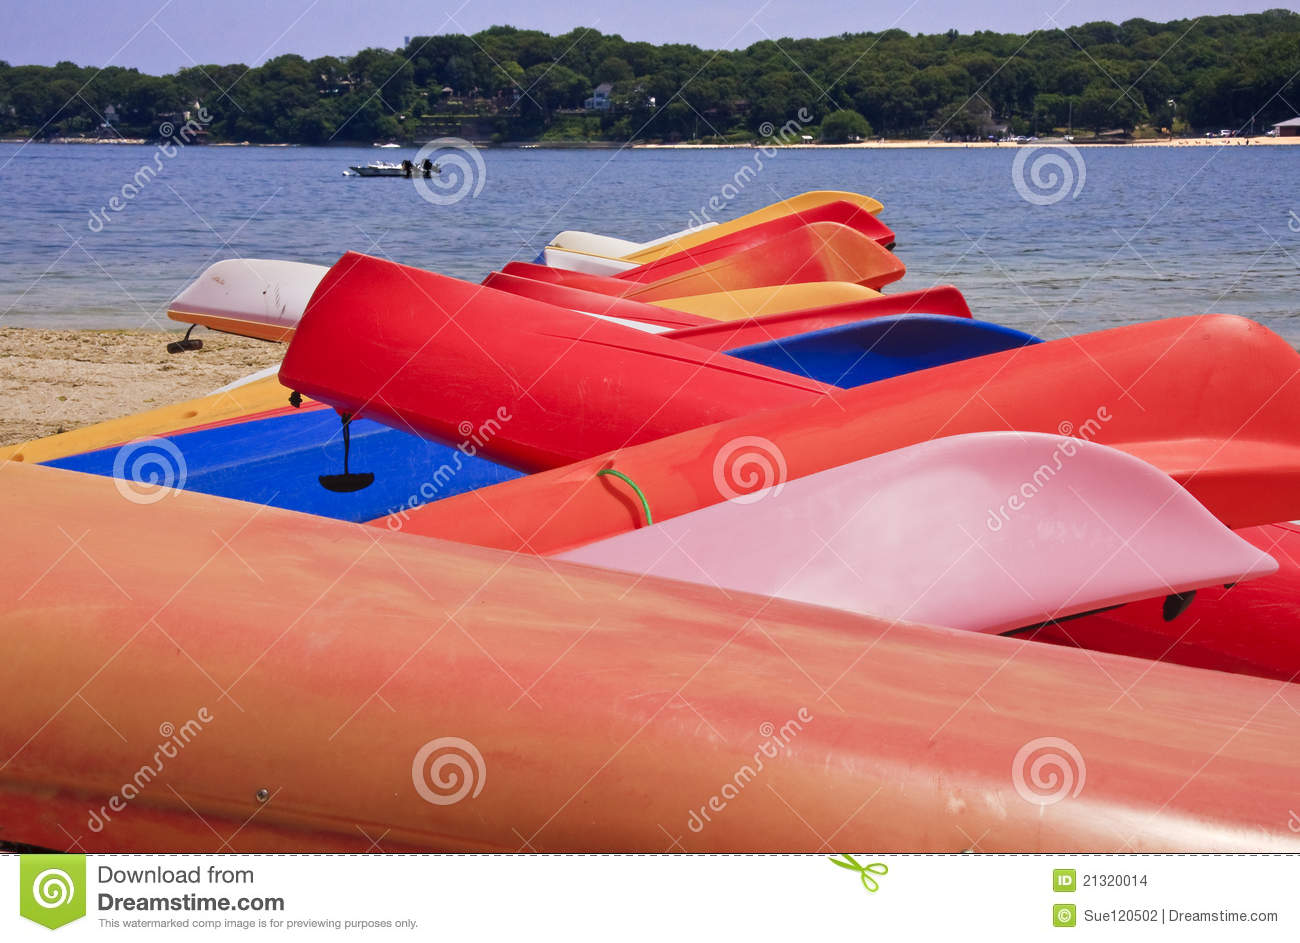 Canoes on the beach stock photo. Image of abstract, boats ...